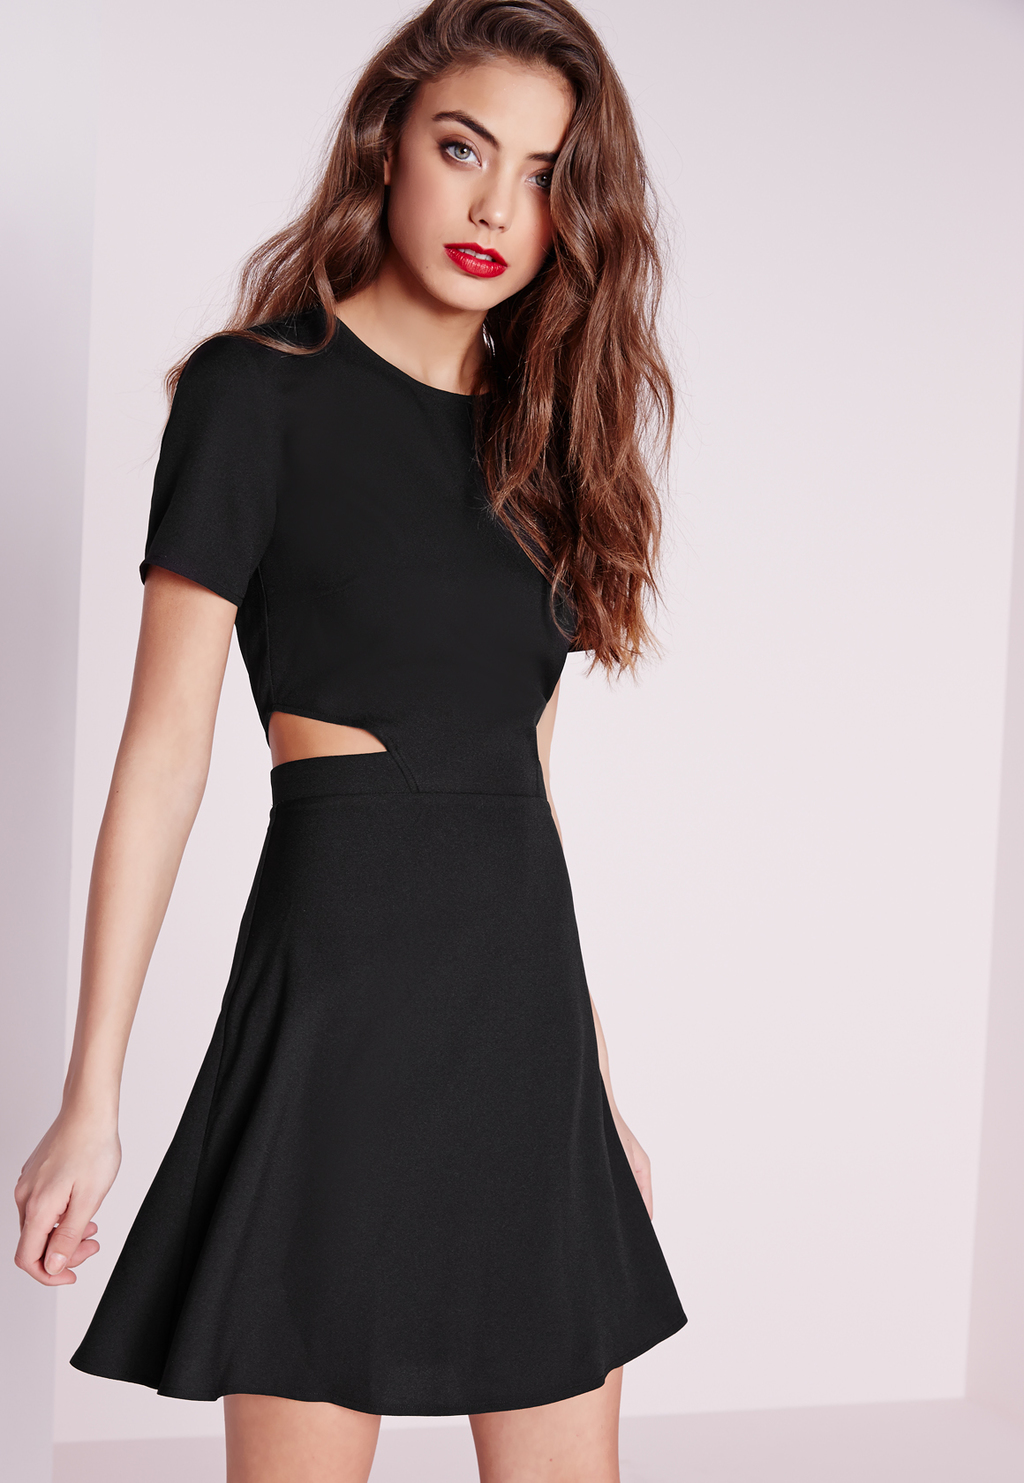 Short Sleeve Crepe Cut Out Waist Skater Dress Black, Black - length: mid thigh; pattern: plain; predominant colour: black; occasions: evening; fit: fitted at waist & bust; style: fit & flare; fibres: polyester/polyamide - stretch; neckline: crew; waist detail: cut out detail; sleeve length: short sleeve; sleeve style: standard; pattern type: fabric; texture group: jersey - stretchy/drapey; season: s/s 2016